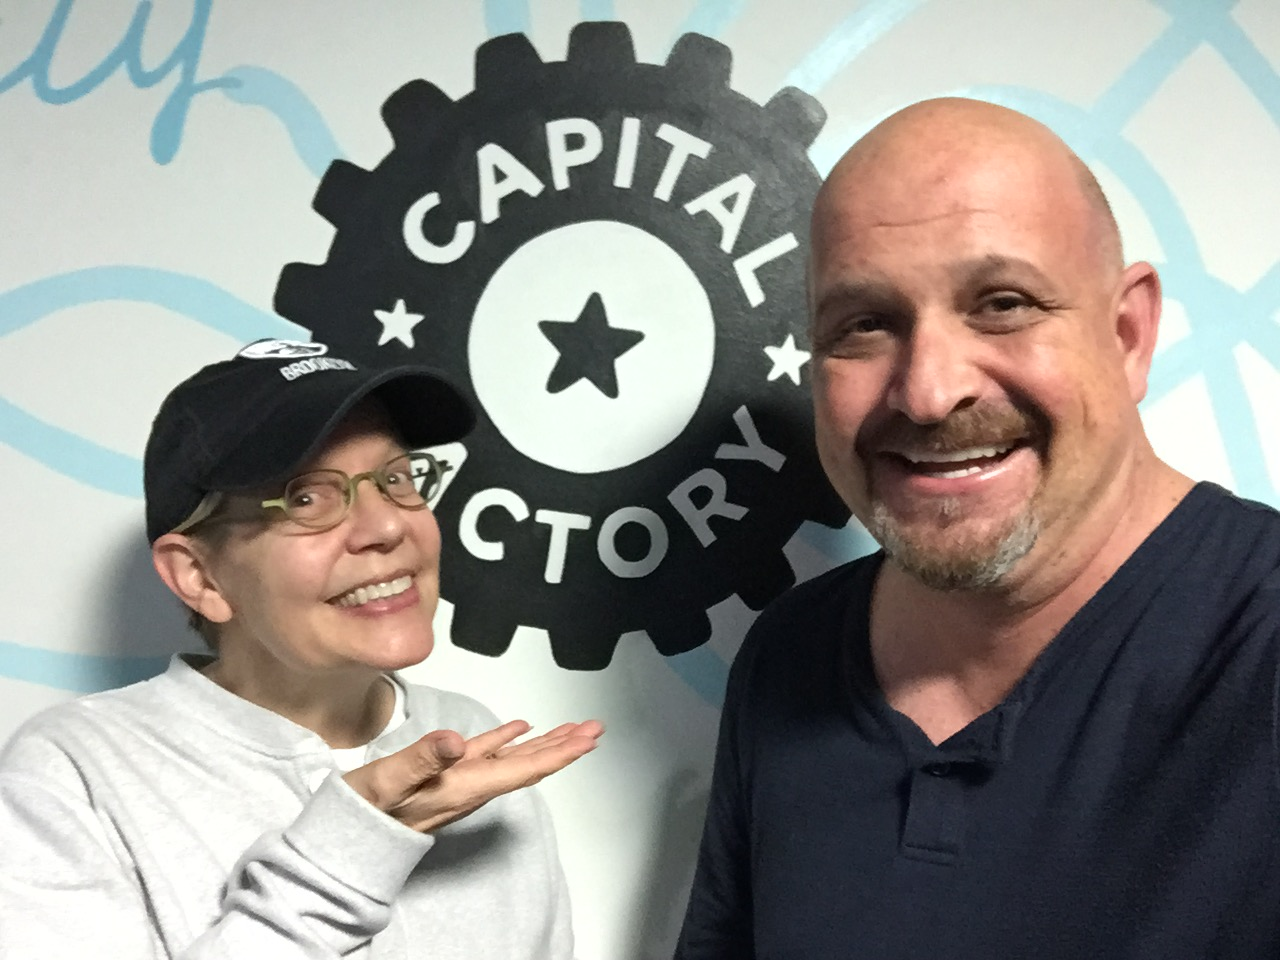 disruptED team upon arriving to Capital Factory in Austin, TX